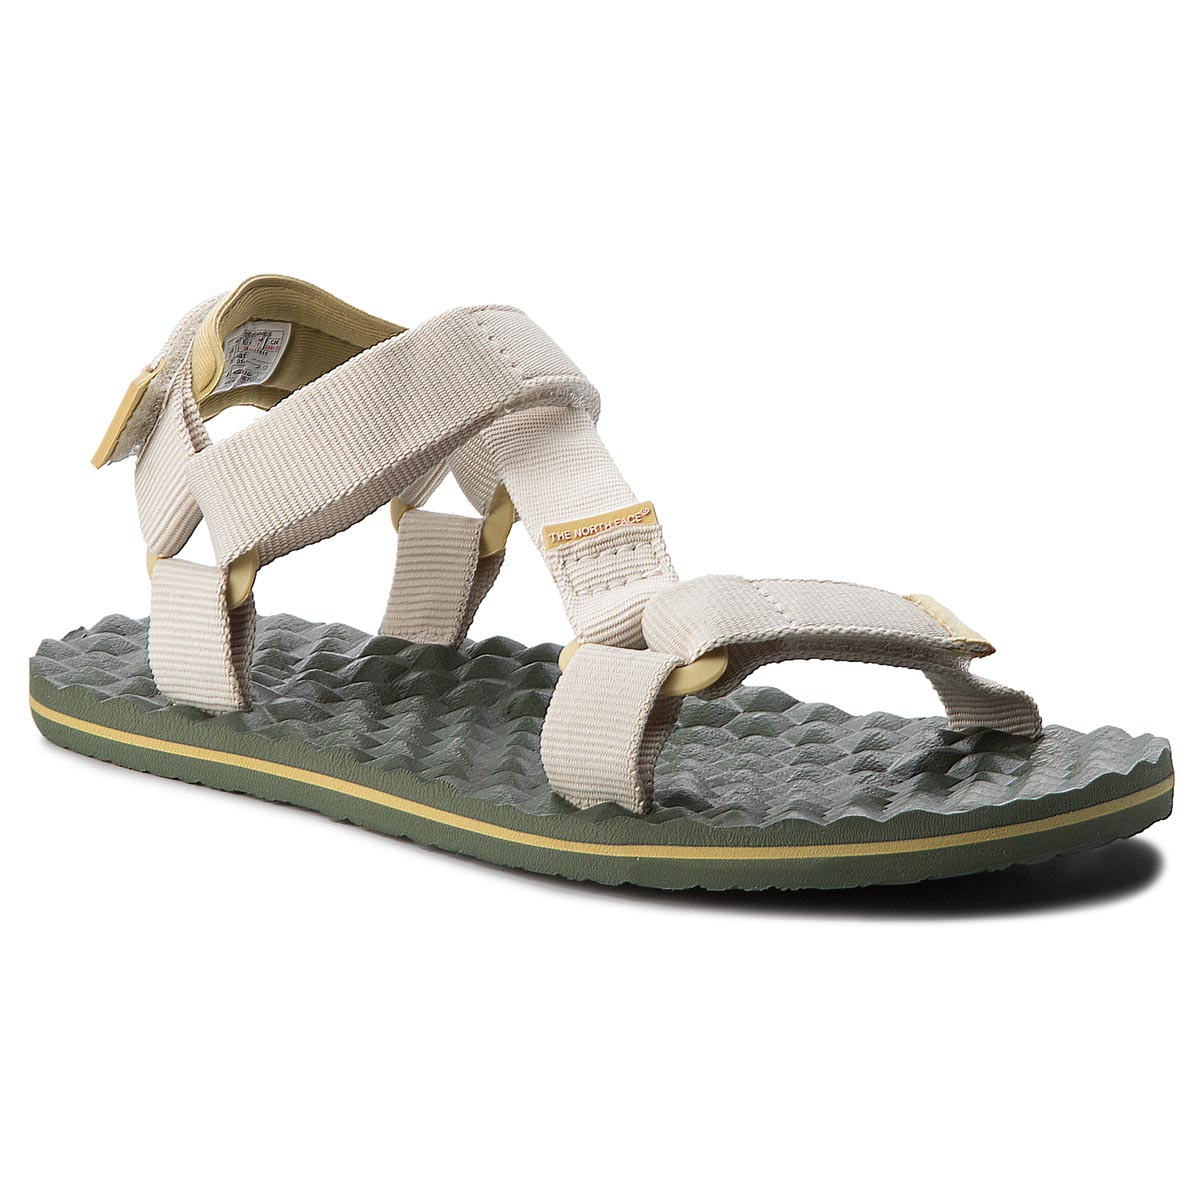 Sandale THE NORTH FACE - Base Sandal Camp Switchback Sandal T92Y984BT Vintage White/Olivenite Yellow